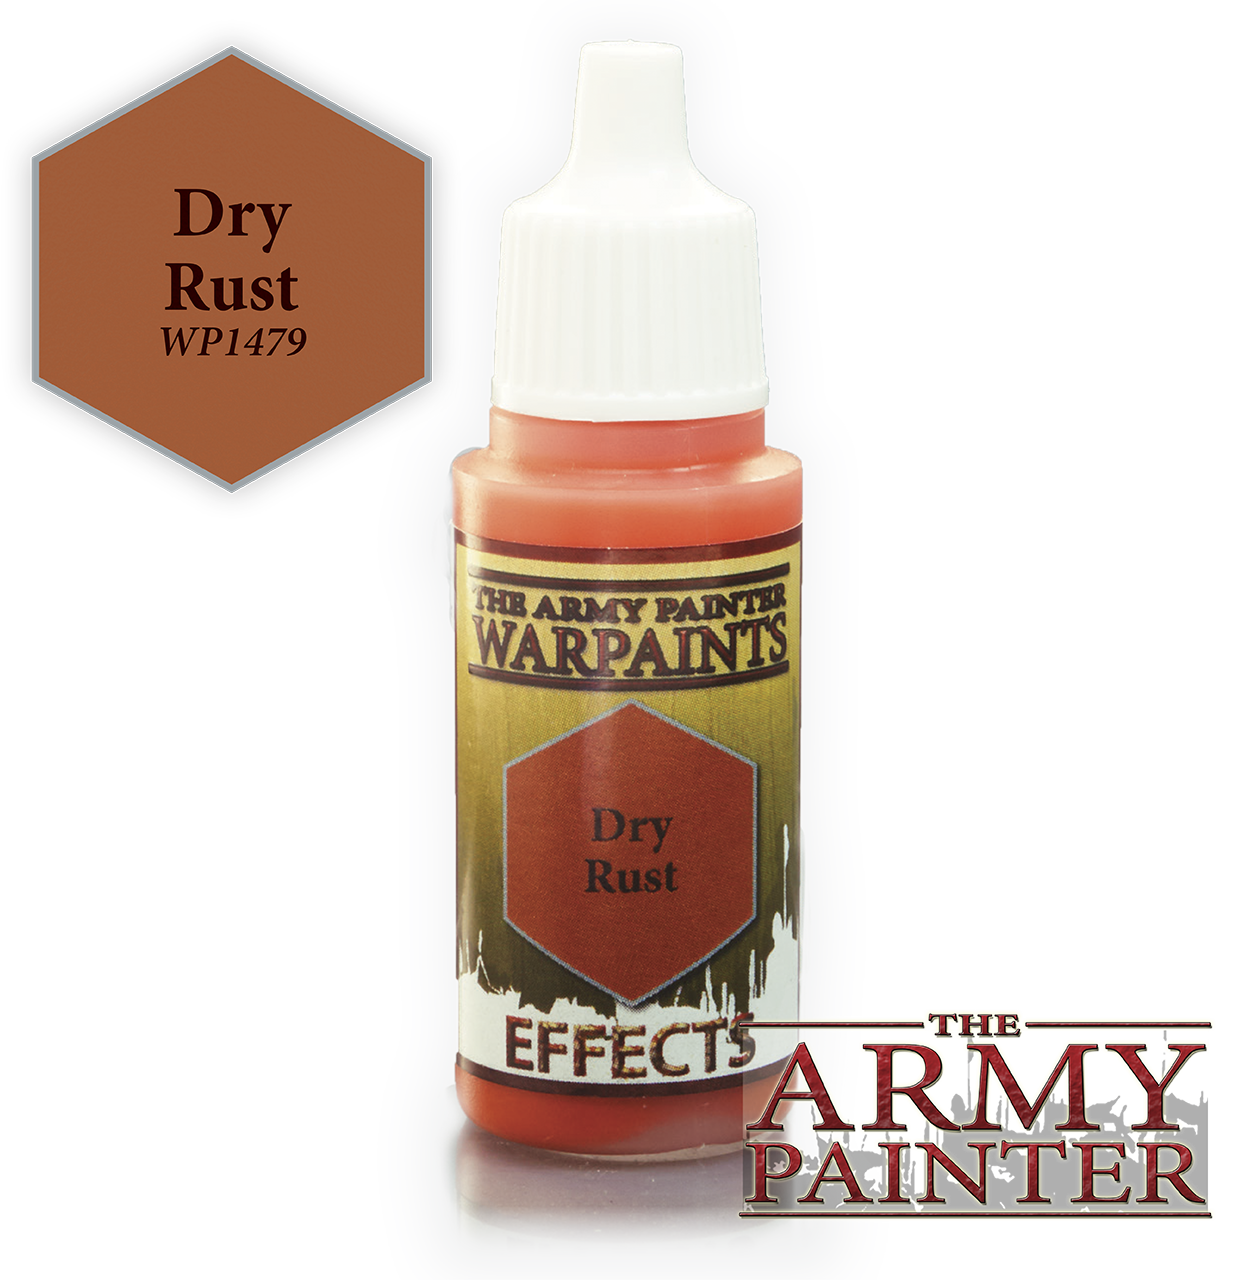 Dry Rust - Army Painter Warpaints